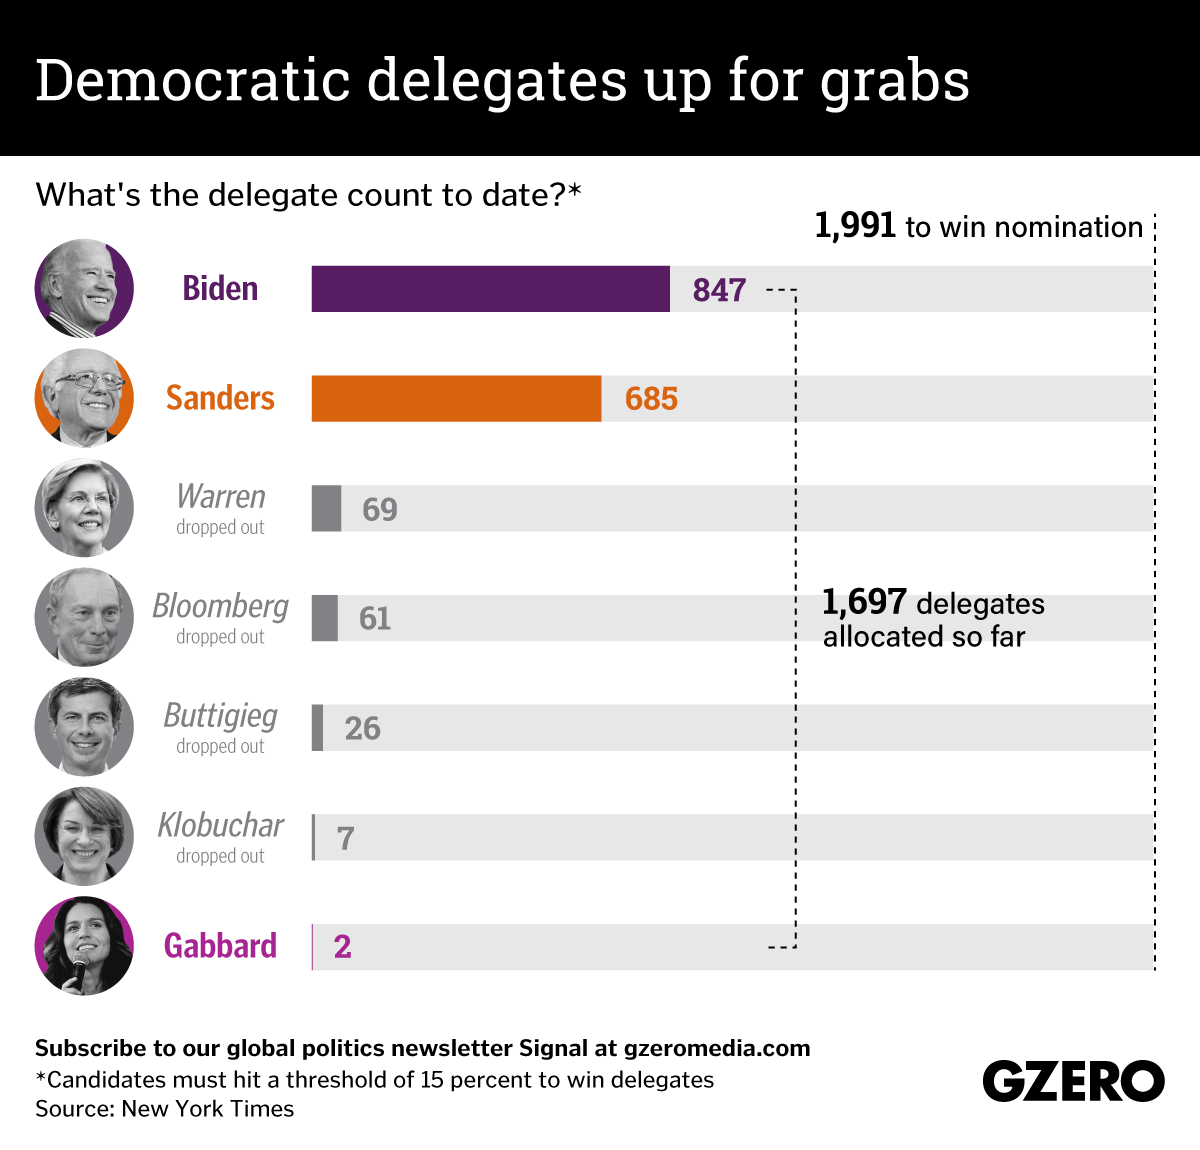 The Graphic Truth: Democratic delegates up for grabs